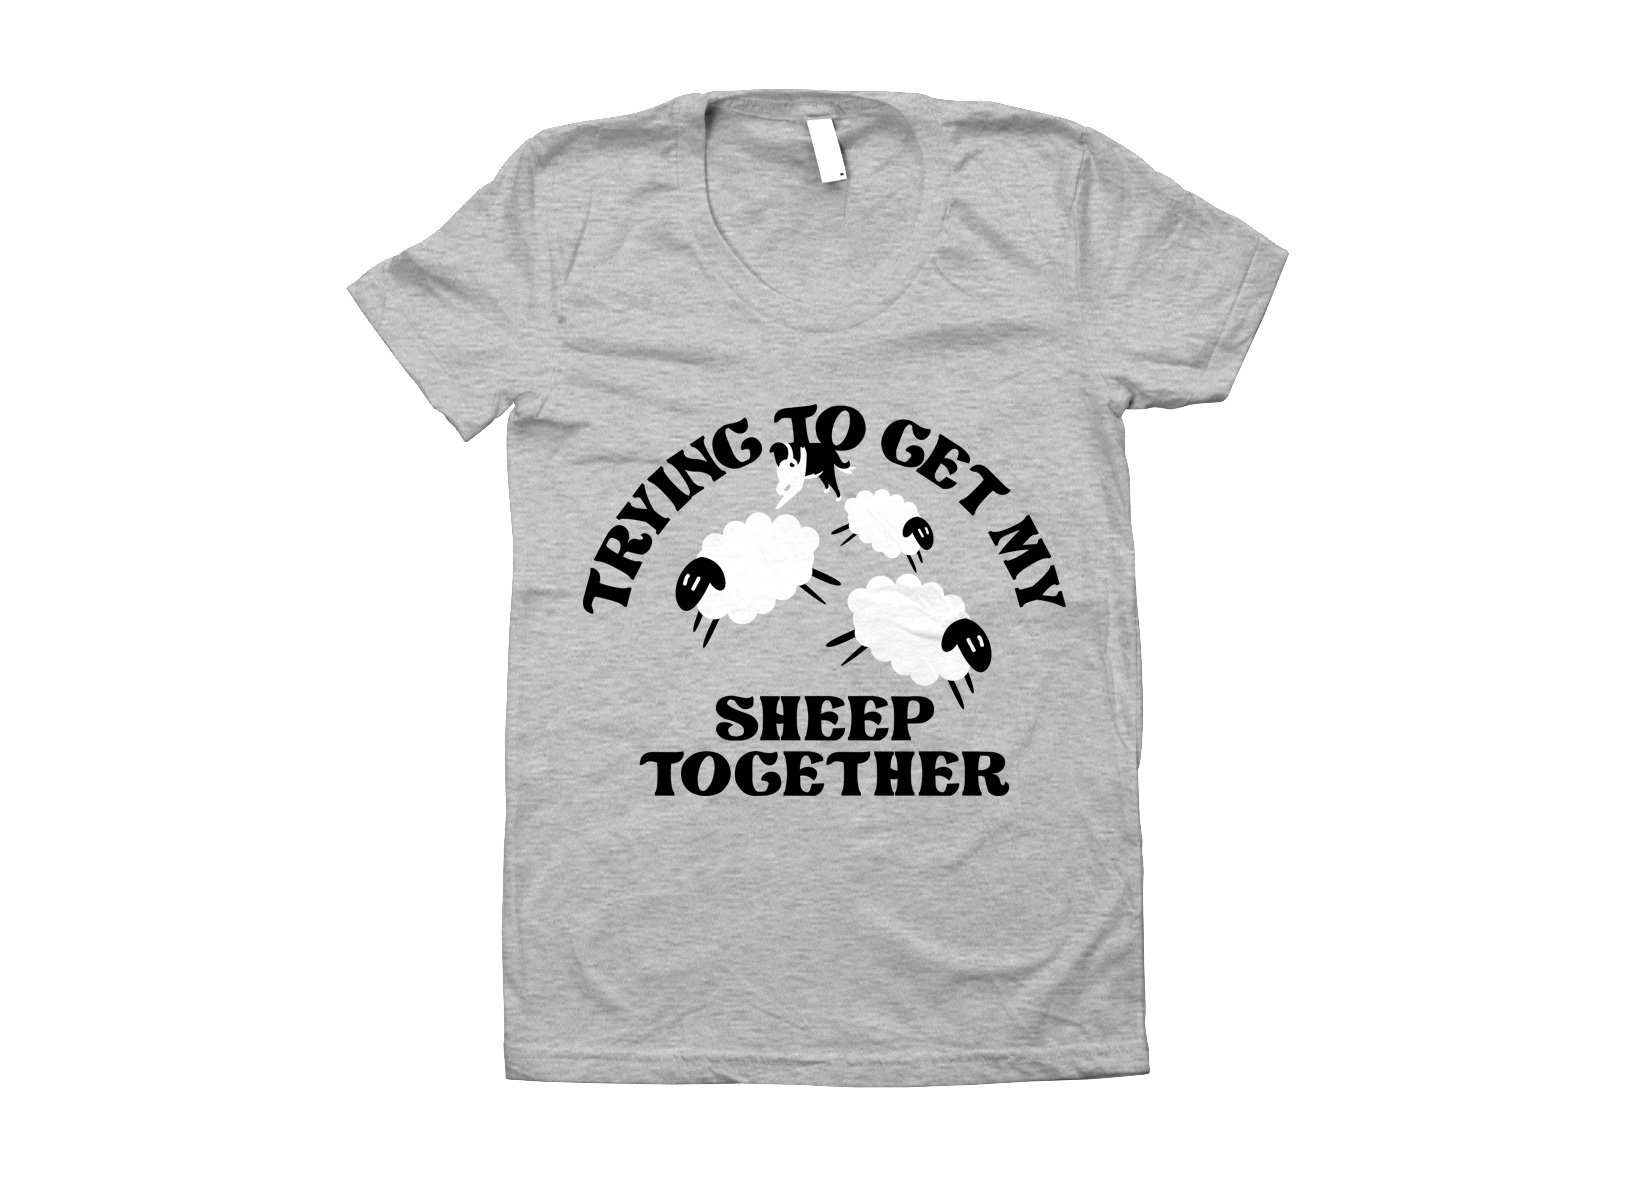 Trying To Get My Sheep Together on Juniors T-Shirt